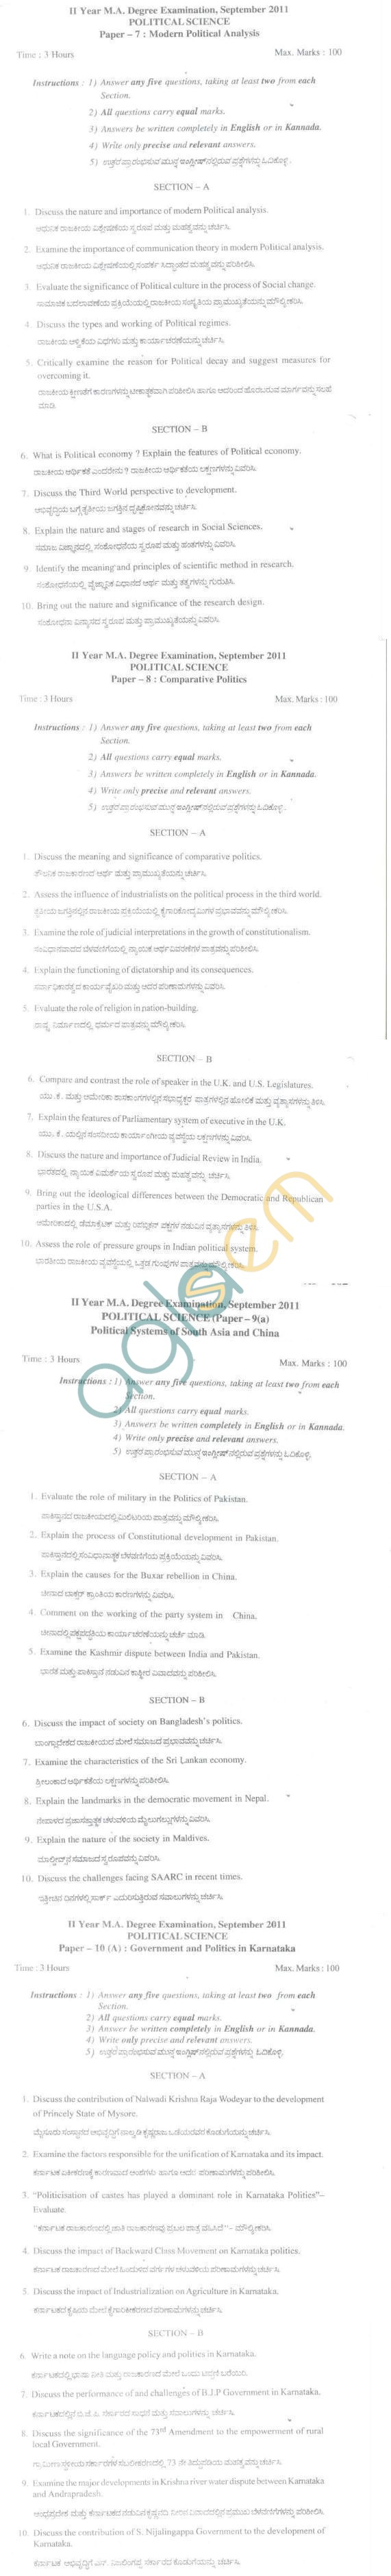 Bangalore University Question Paper September 2011 II Year M.A. Degree Examination - Political Science